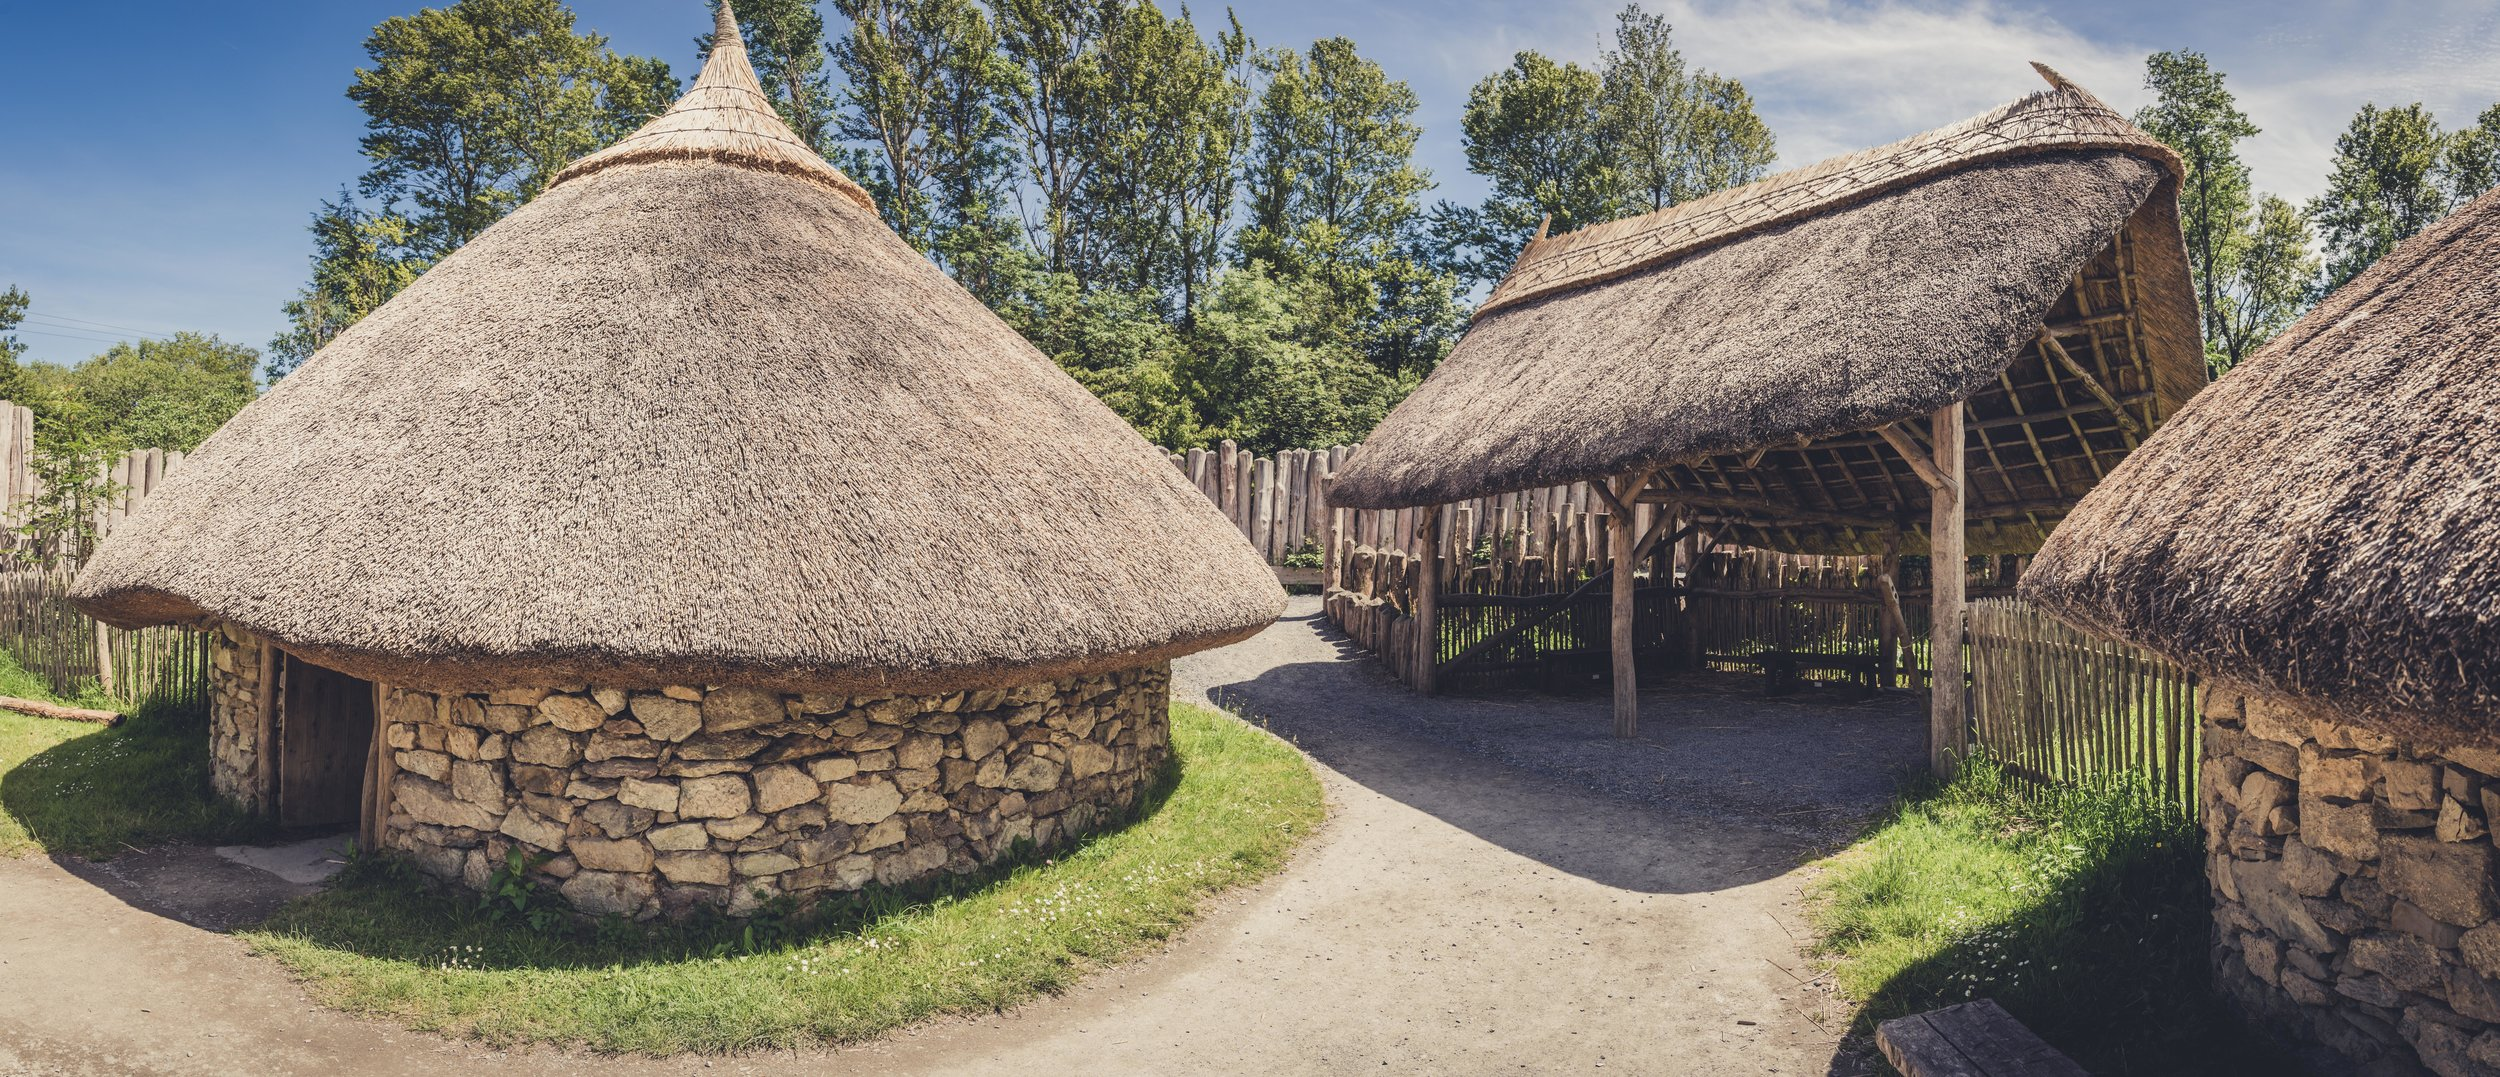 wexford heritage centre ireland homes in the ring fort.jpg